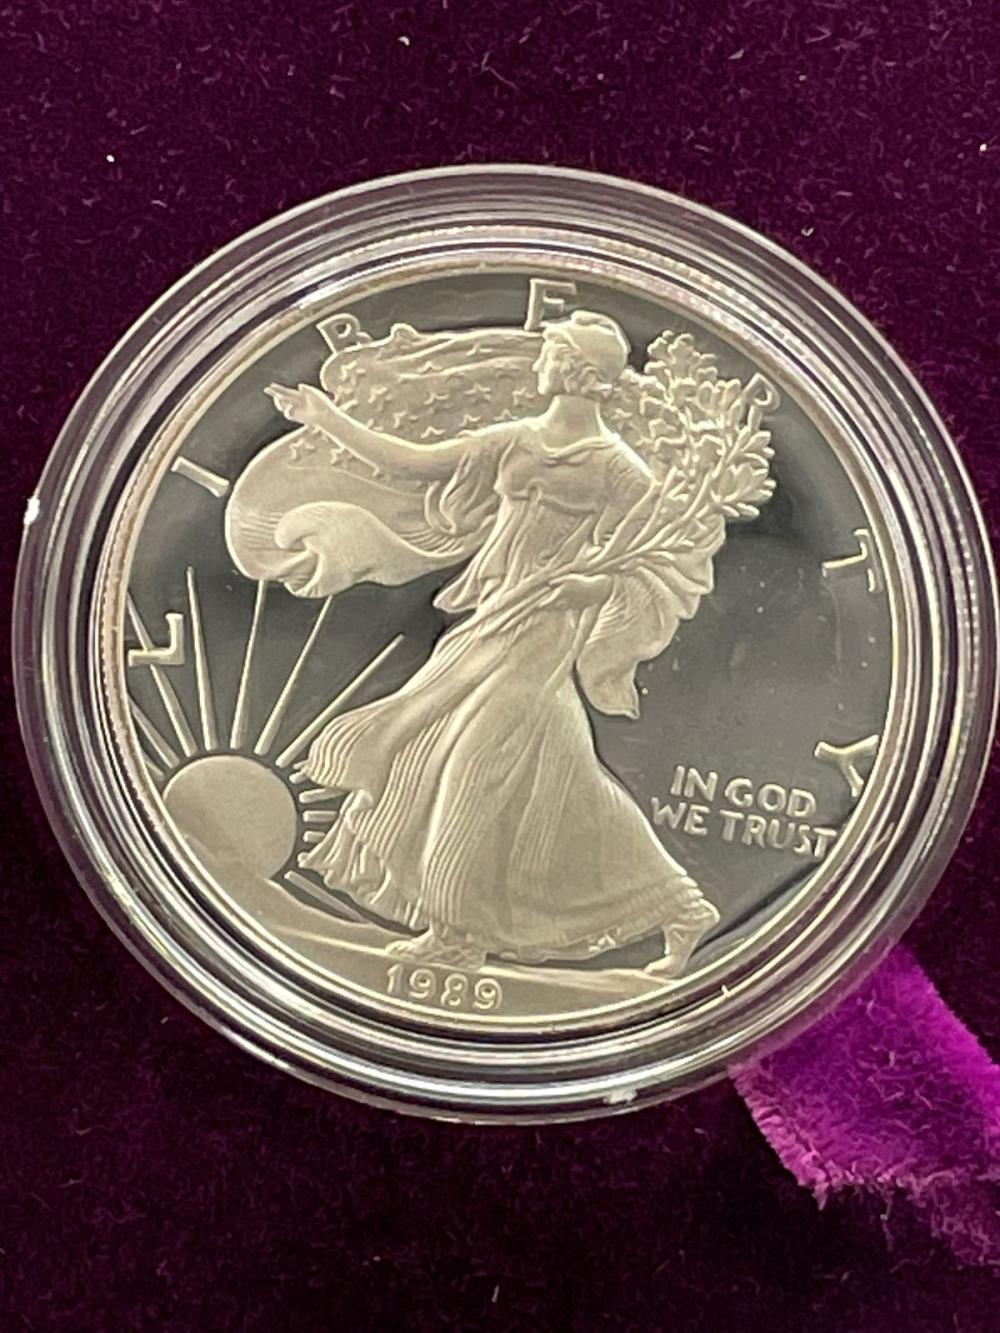 1989-S American Eagle One Ounce Silver Proof Coin In Presentation Box